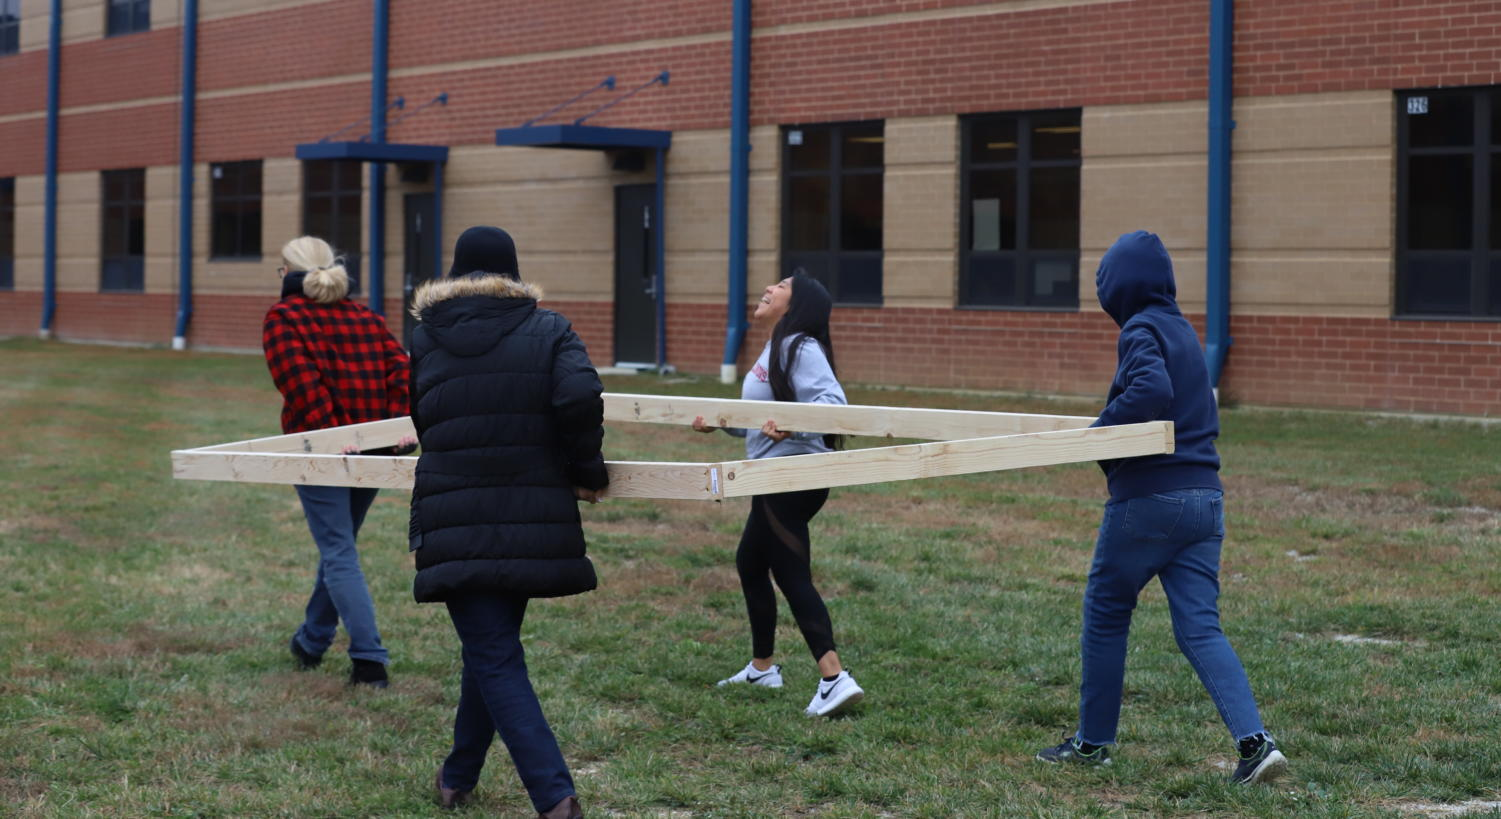 On November 6th, students from Garden Club put together the foundations for their Container Garden.